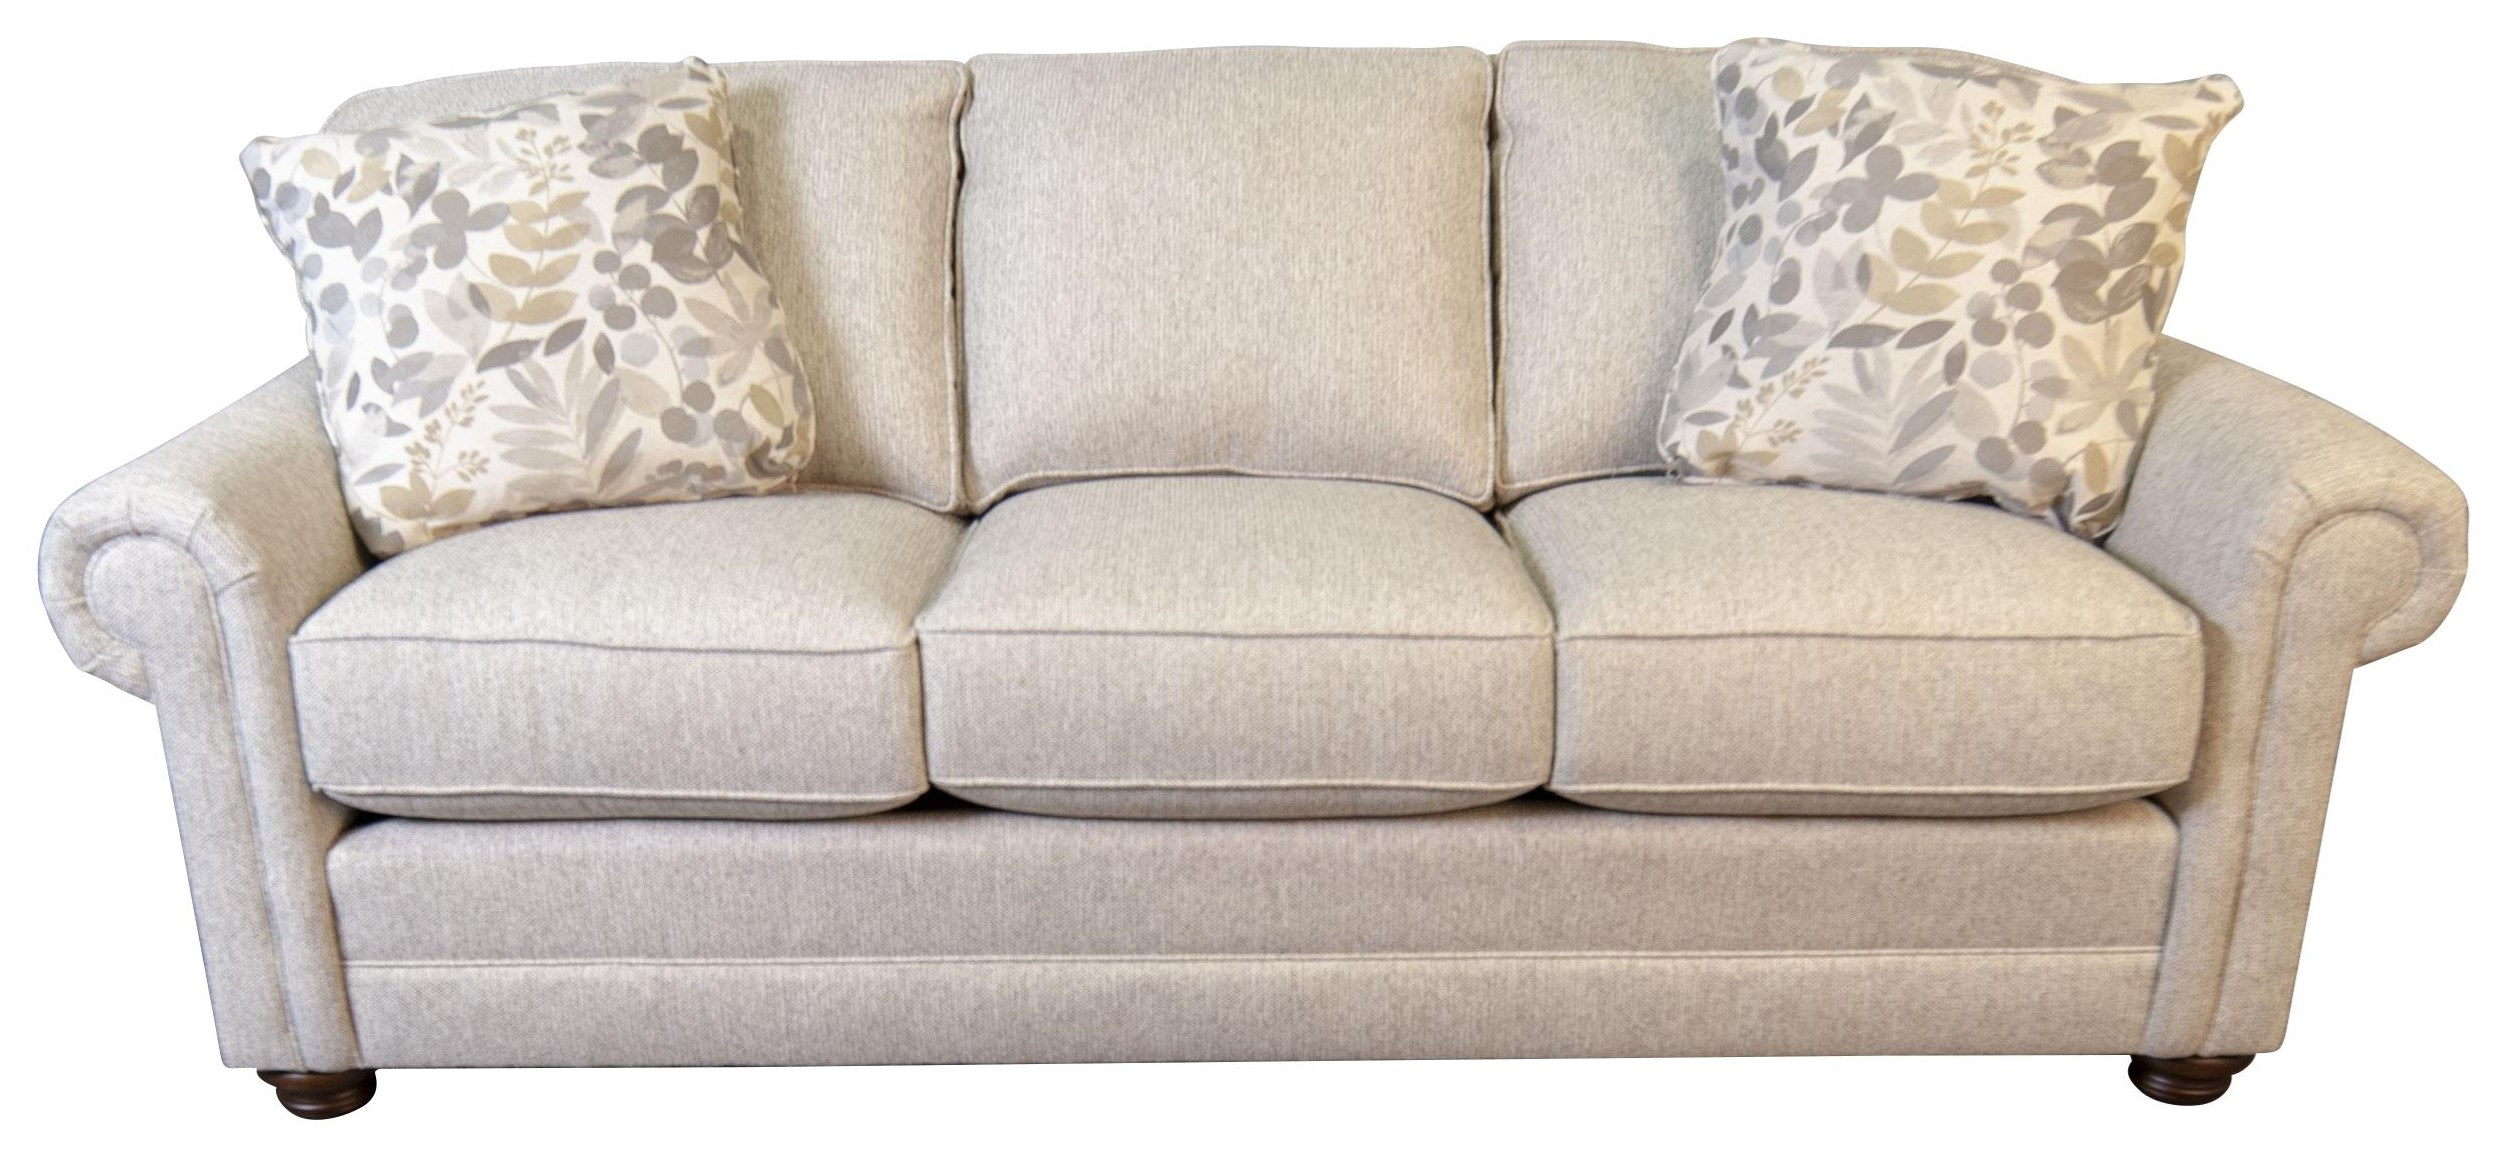 Jacqueline Jacqueline Sofa by King Hickory at Morris Home